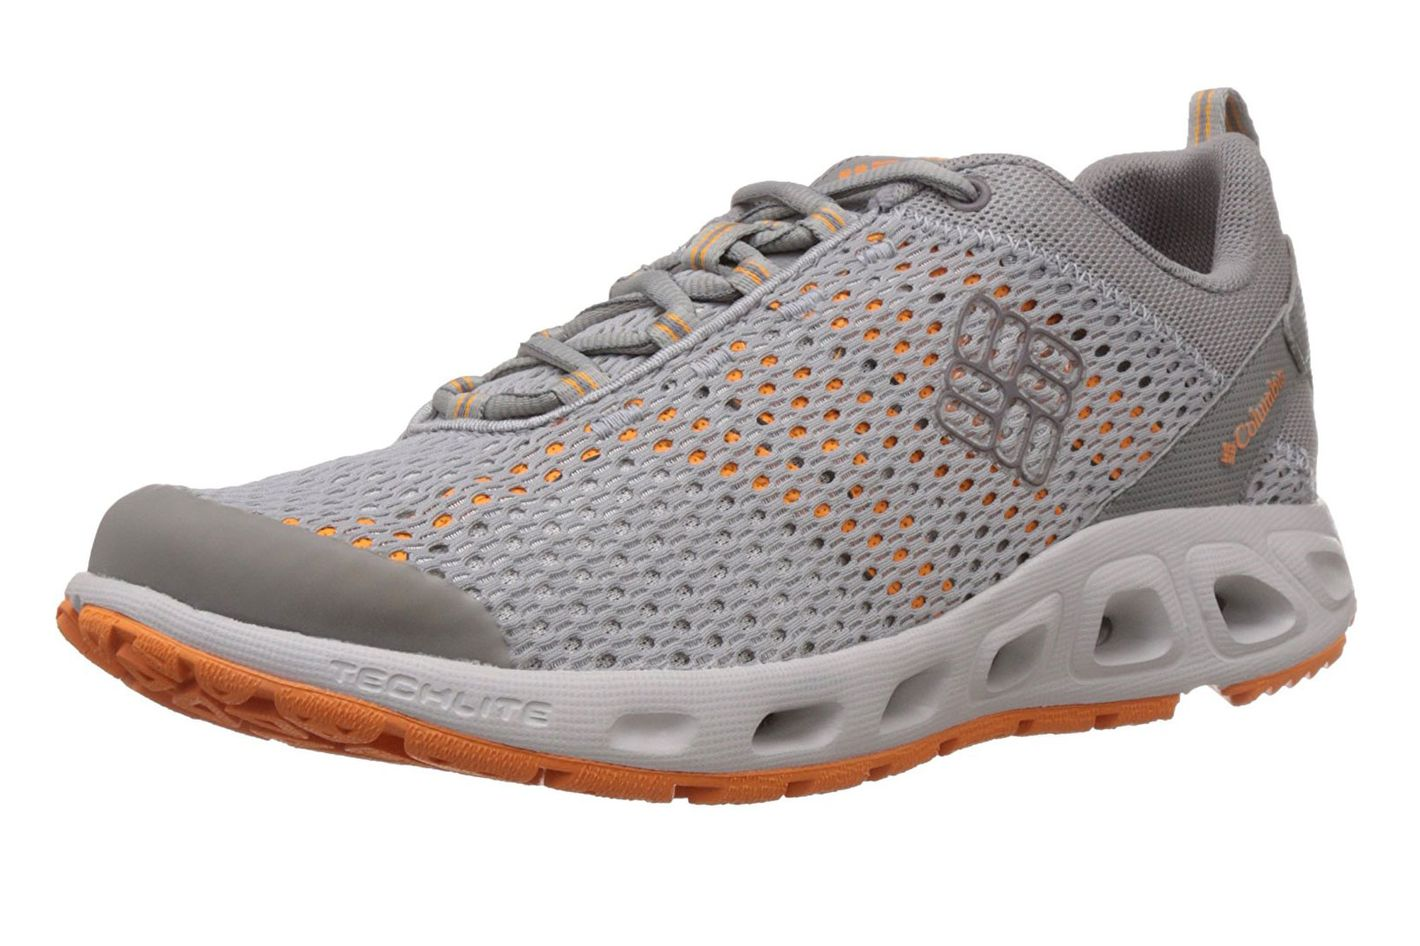 98eb2af315b9 The 18 Best Water Shoes and Reviews for Men